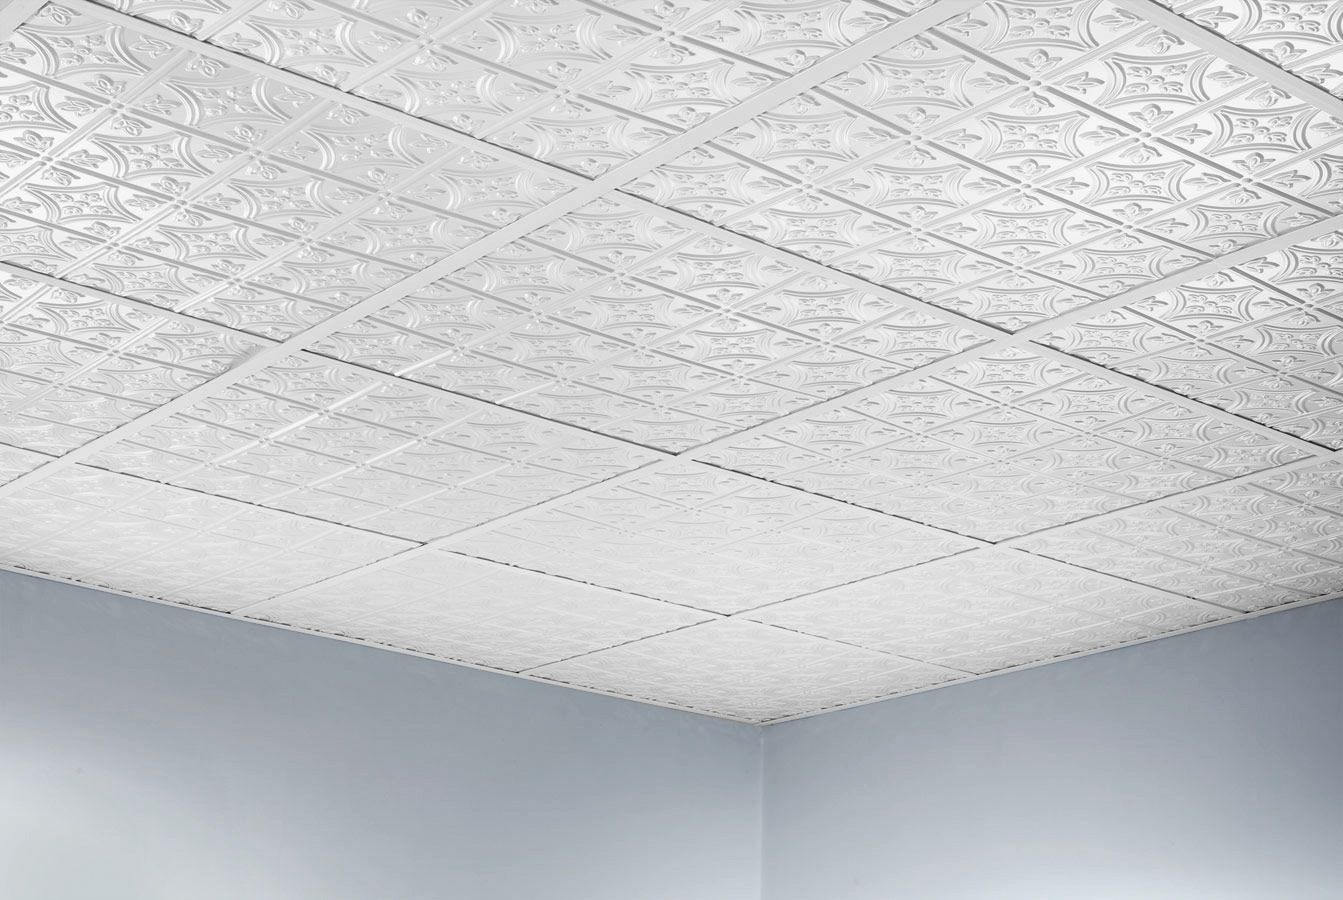 tile acoustic aluminum x perforated panels front ceiling for metal sale ceilings tiles sgs